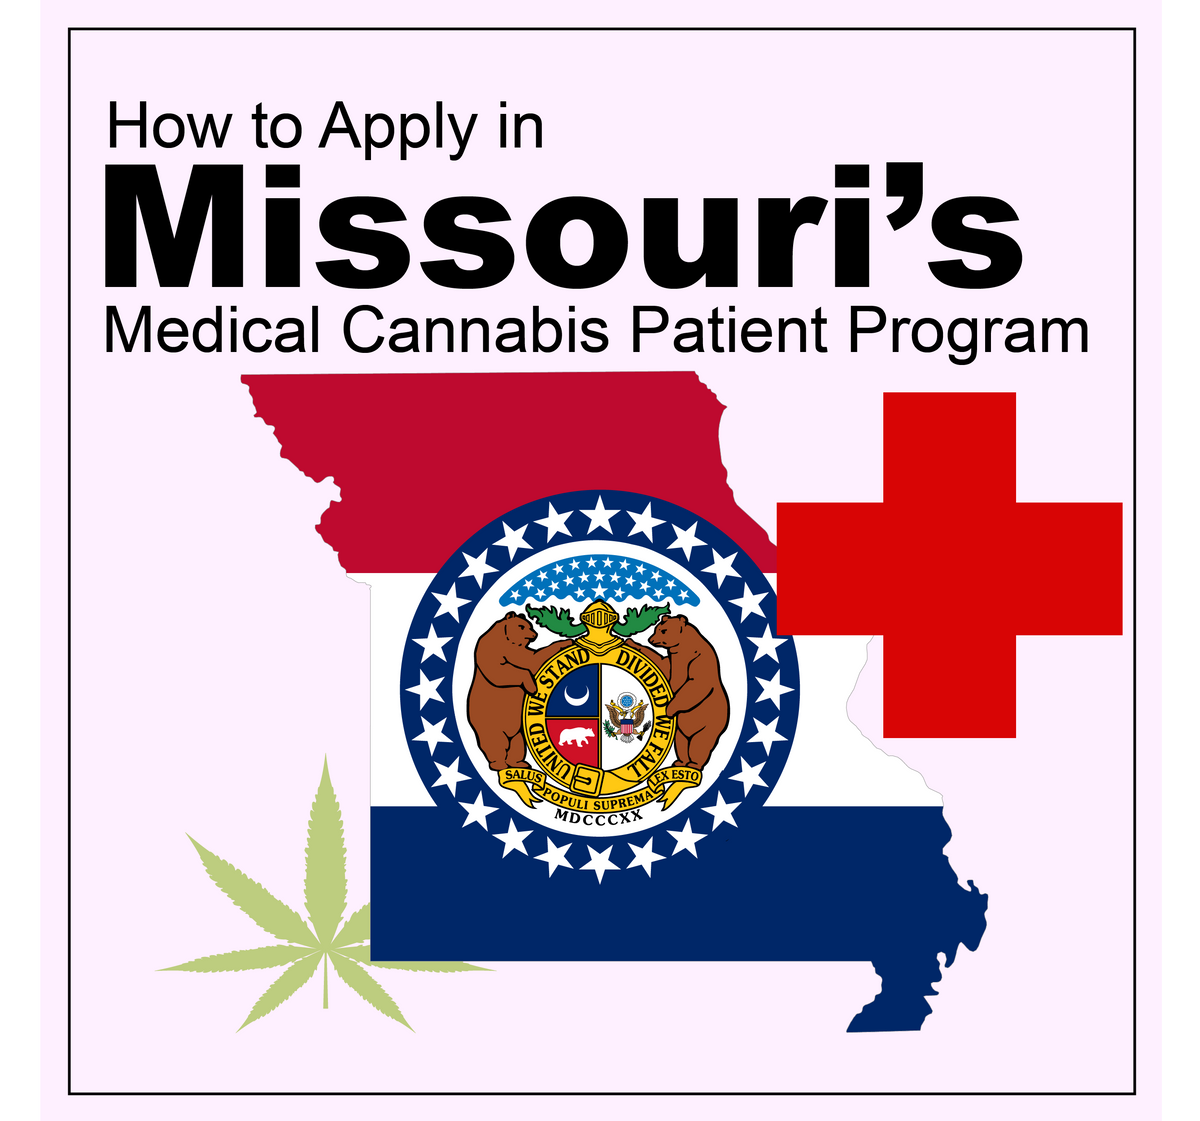 How to Apply in Missouri